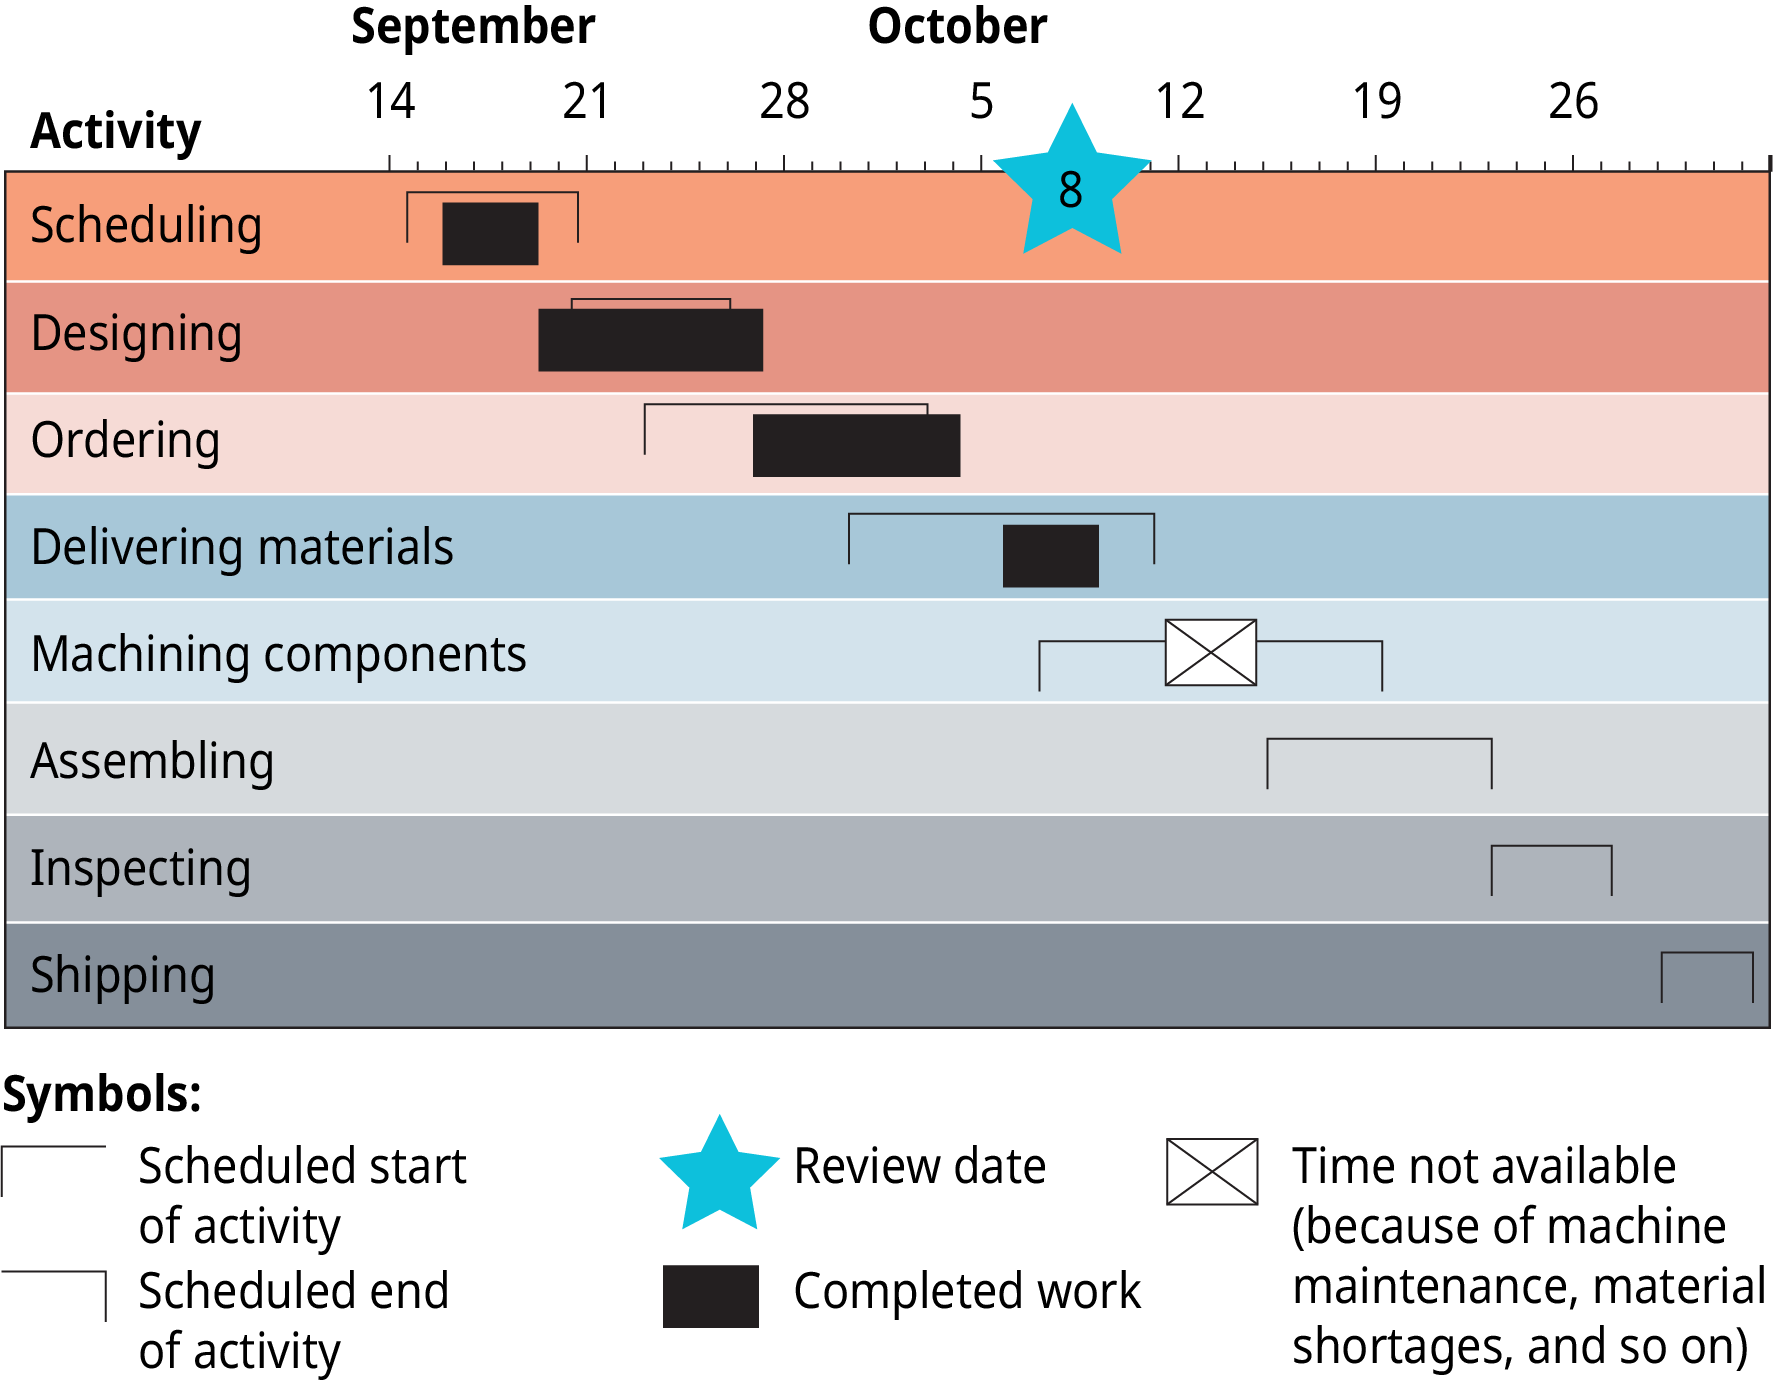 The chart is set up with rows of activities, and months, from left to right above the activities. From top to bottom, the activities are scheduling; and designing; and ordering; and delivering materials; and machining components; and assembling; and inspecting; and shipping. From left to right the months show September and October. The chart uses symbols. A star indicates the October 8th is the review date. Scheduling starts September 15th, and ends September 21st. Designing starts September 21st, and ends the 26th. The completed work bar shows this started a day early and ended a day late. Ordering starts September 22nd, and ends October 3rd. The completed work bar shows this started September 27, and finished October 4th. Delivering materials starts September 30th and ends October 11th. Complete work shows that this started the 5th and ended the 8th. Machining components shows up as time not available because of machine maintenance, material shortages, and so on.